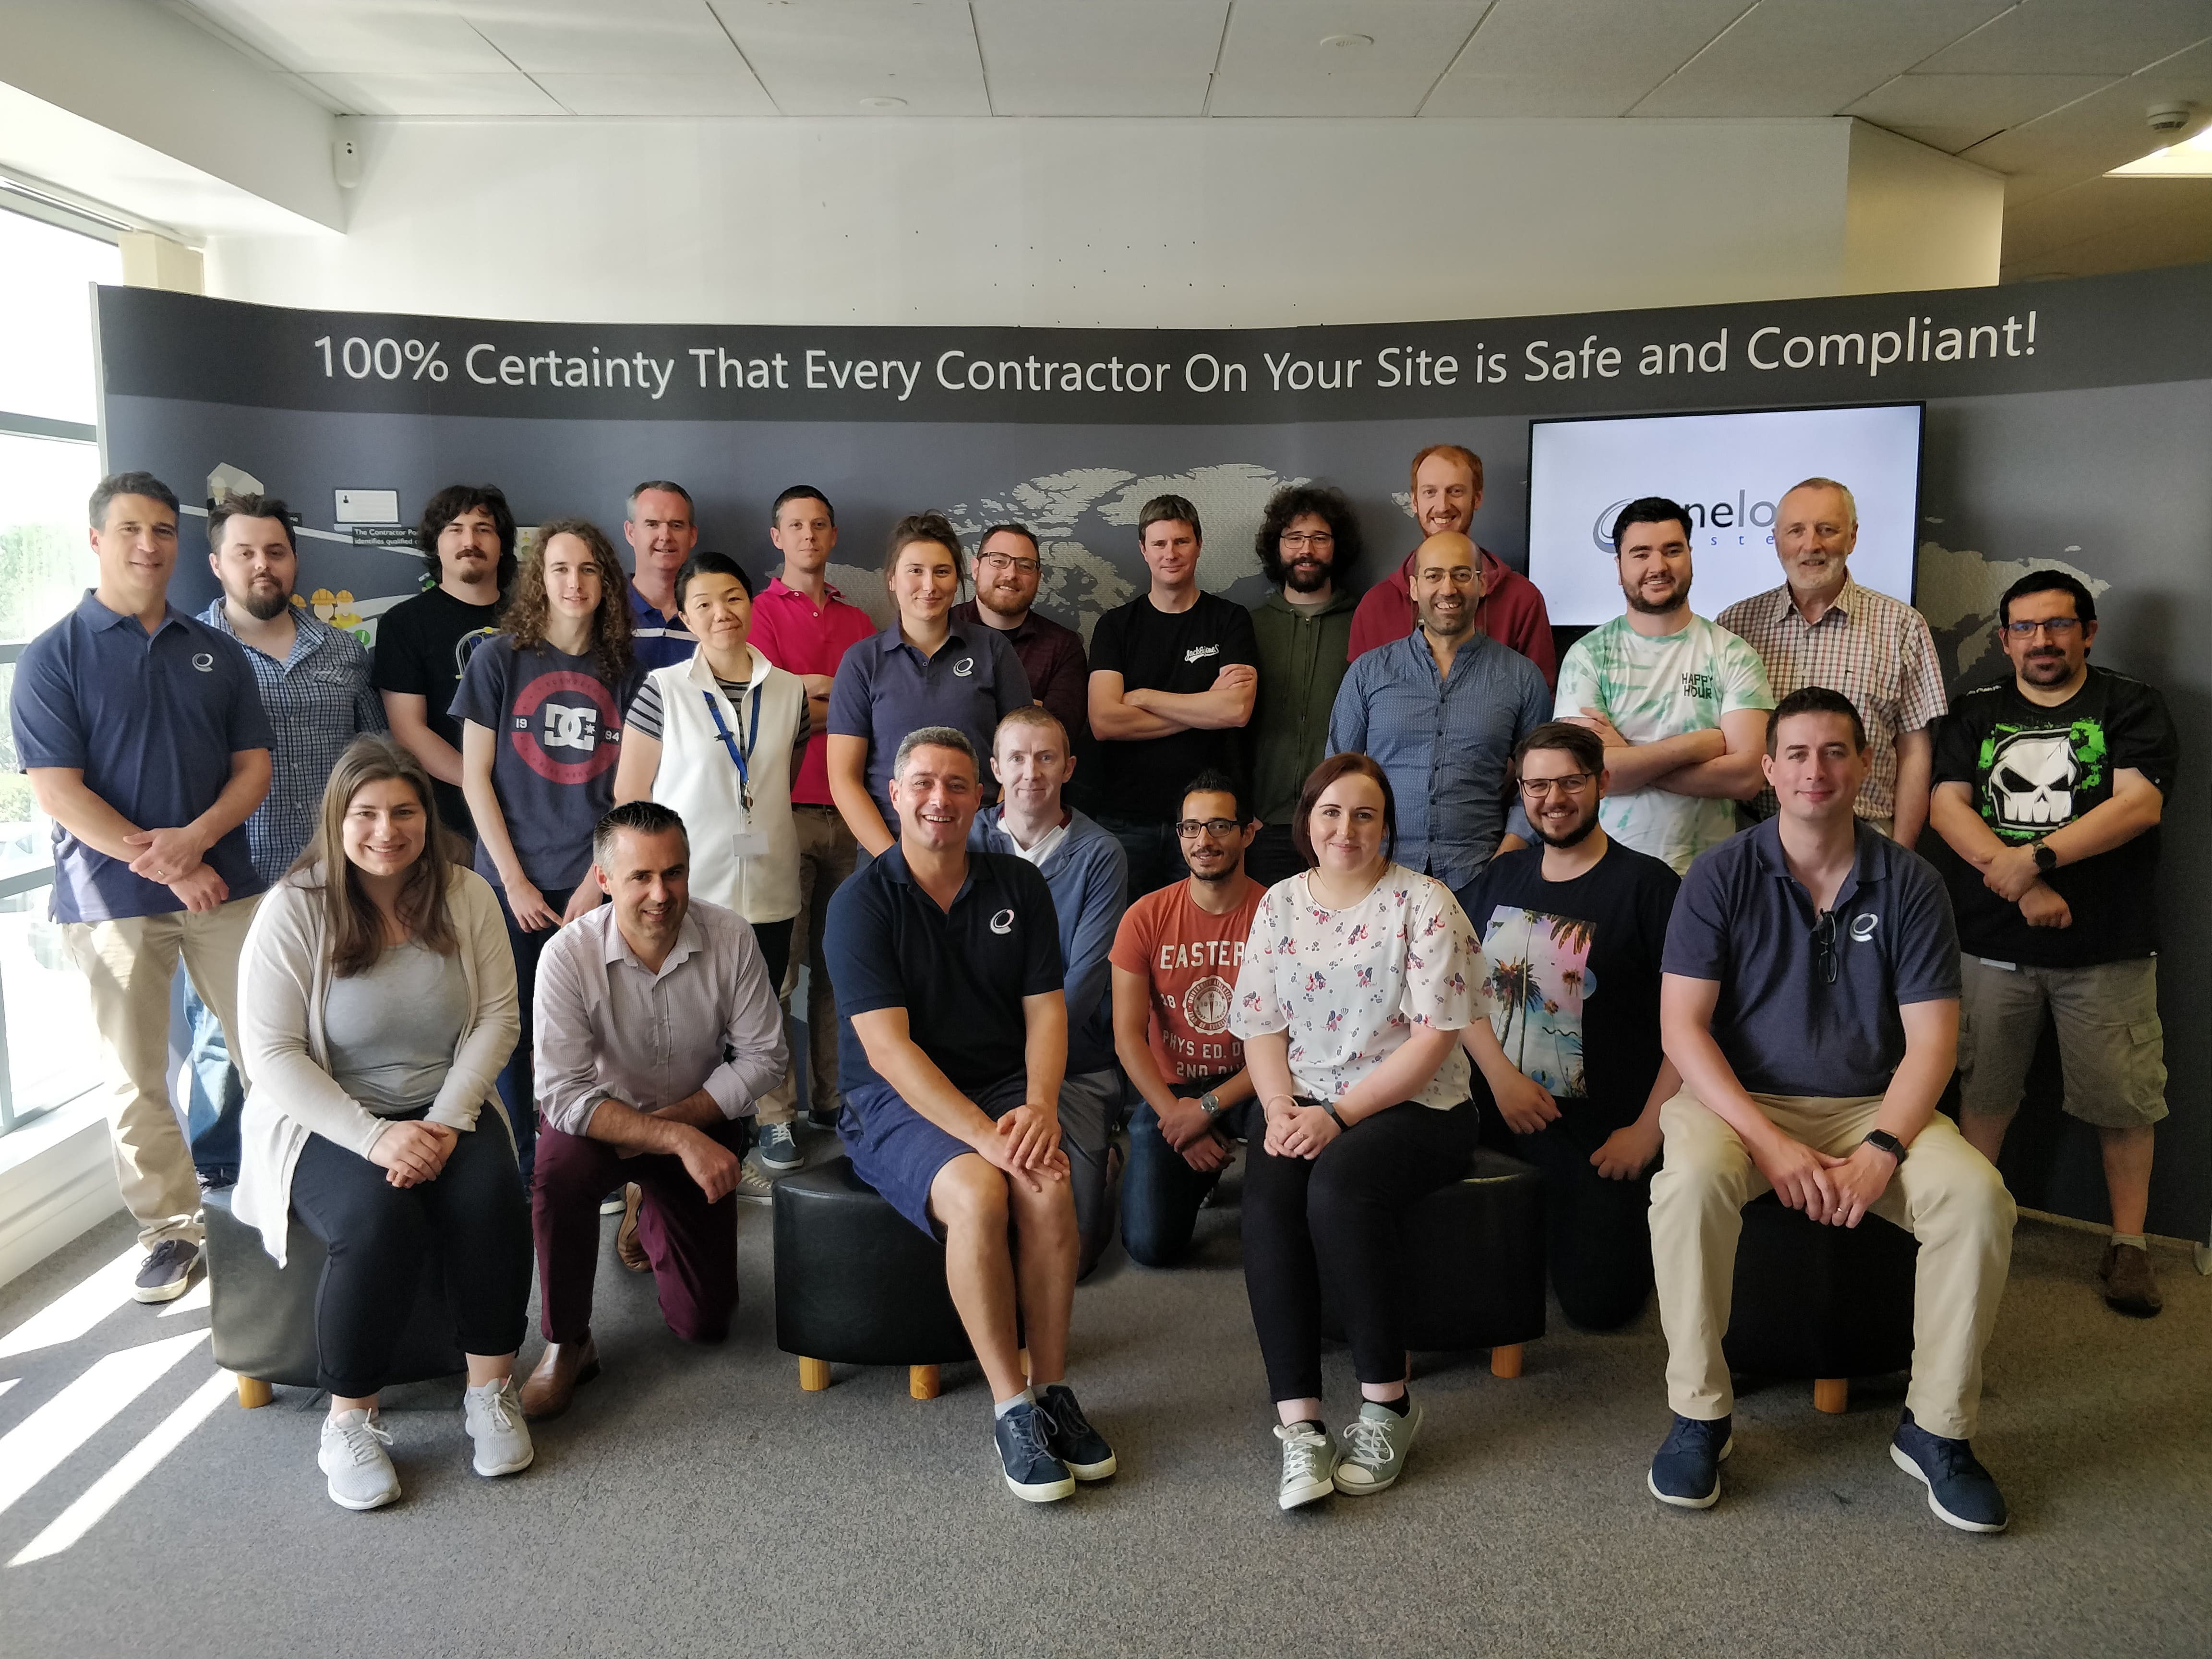 OneLook Systems: Leading the way in contractor compliance innovation worldwide